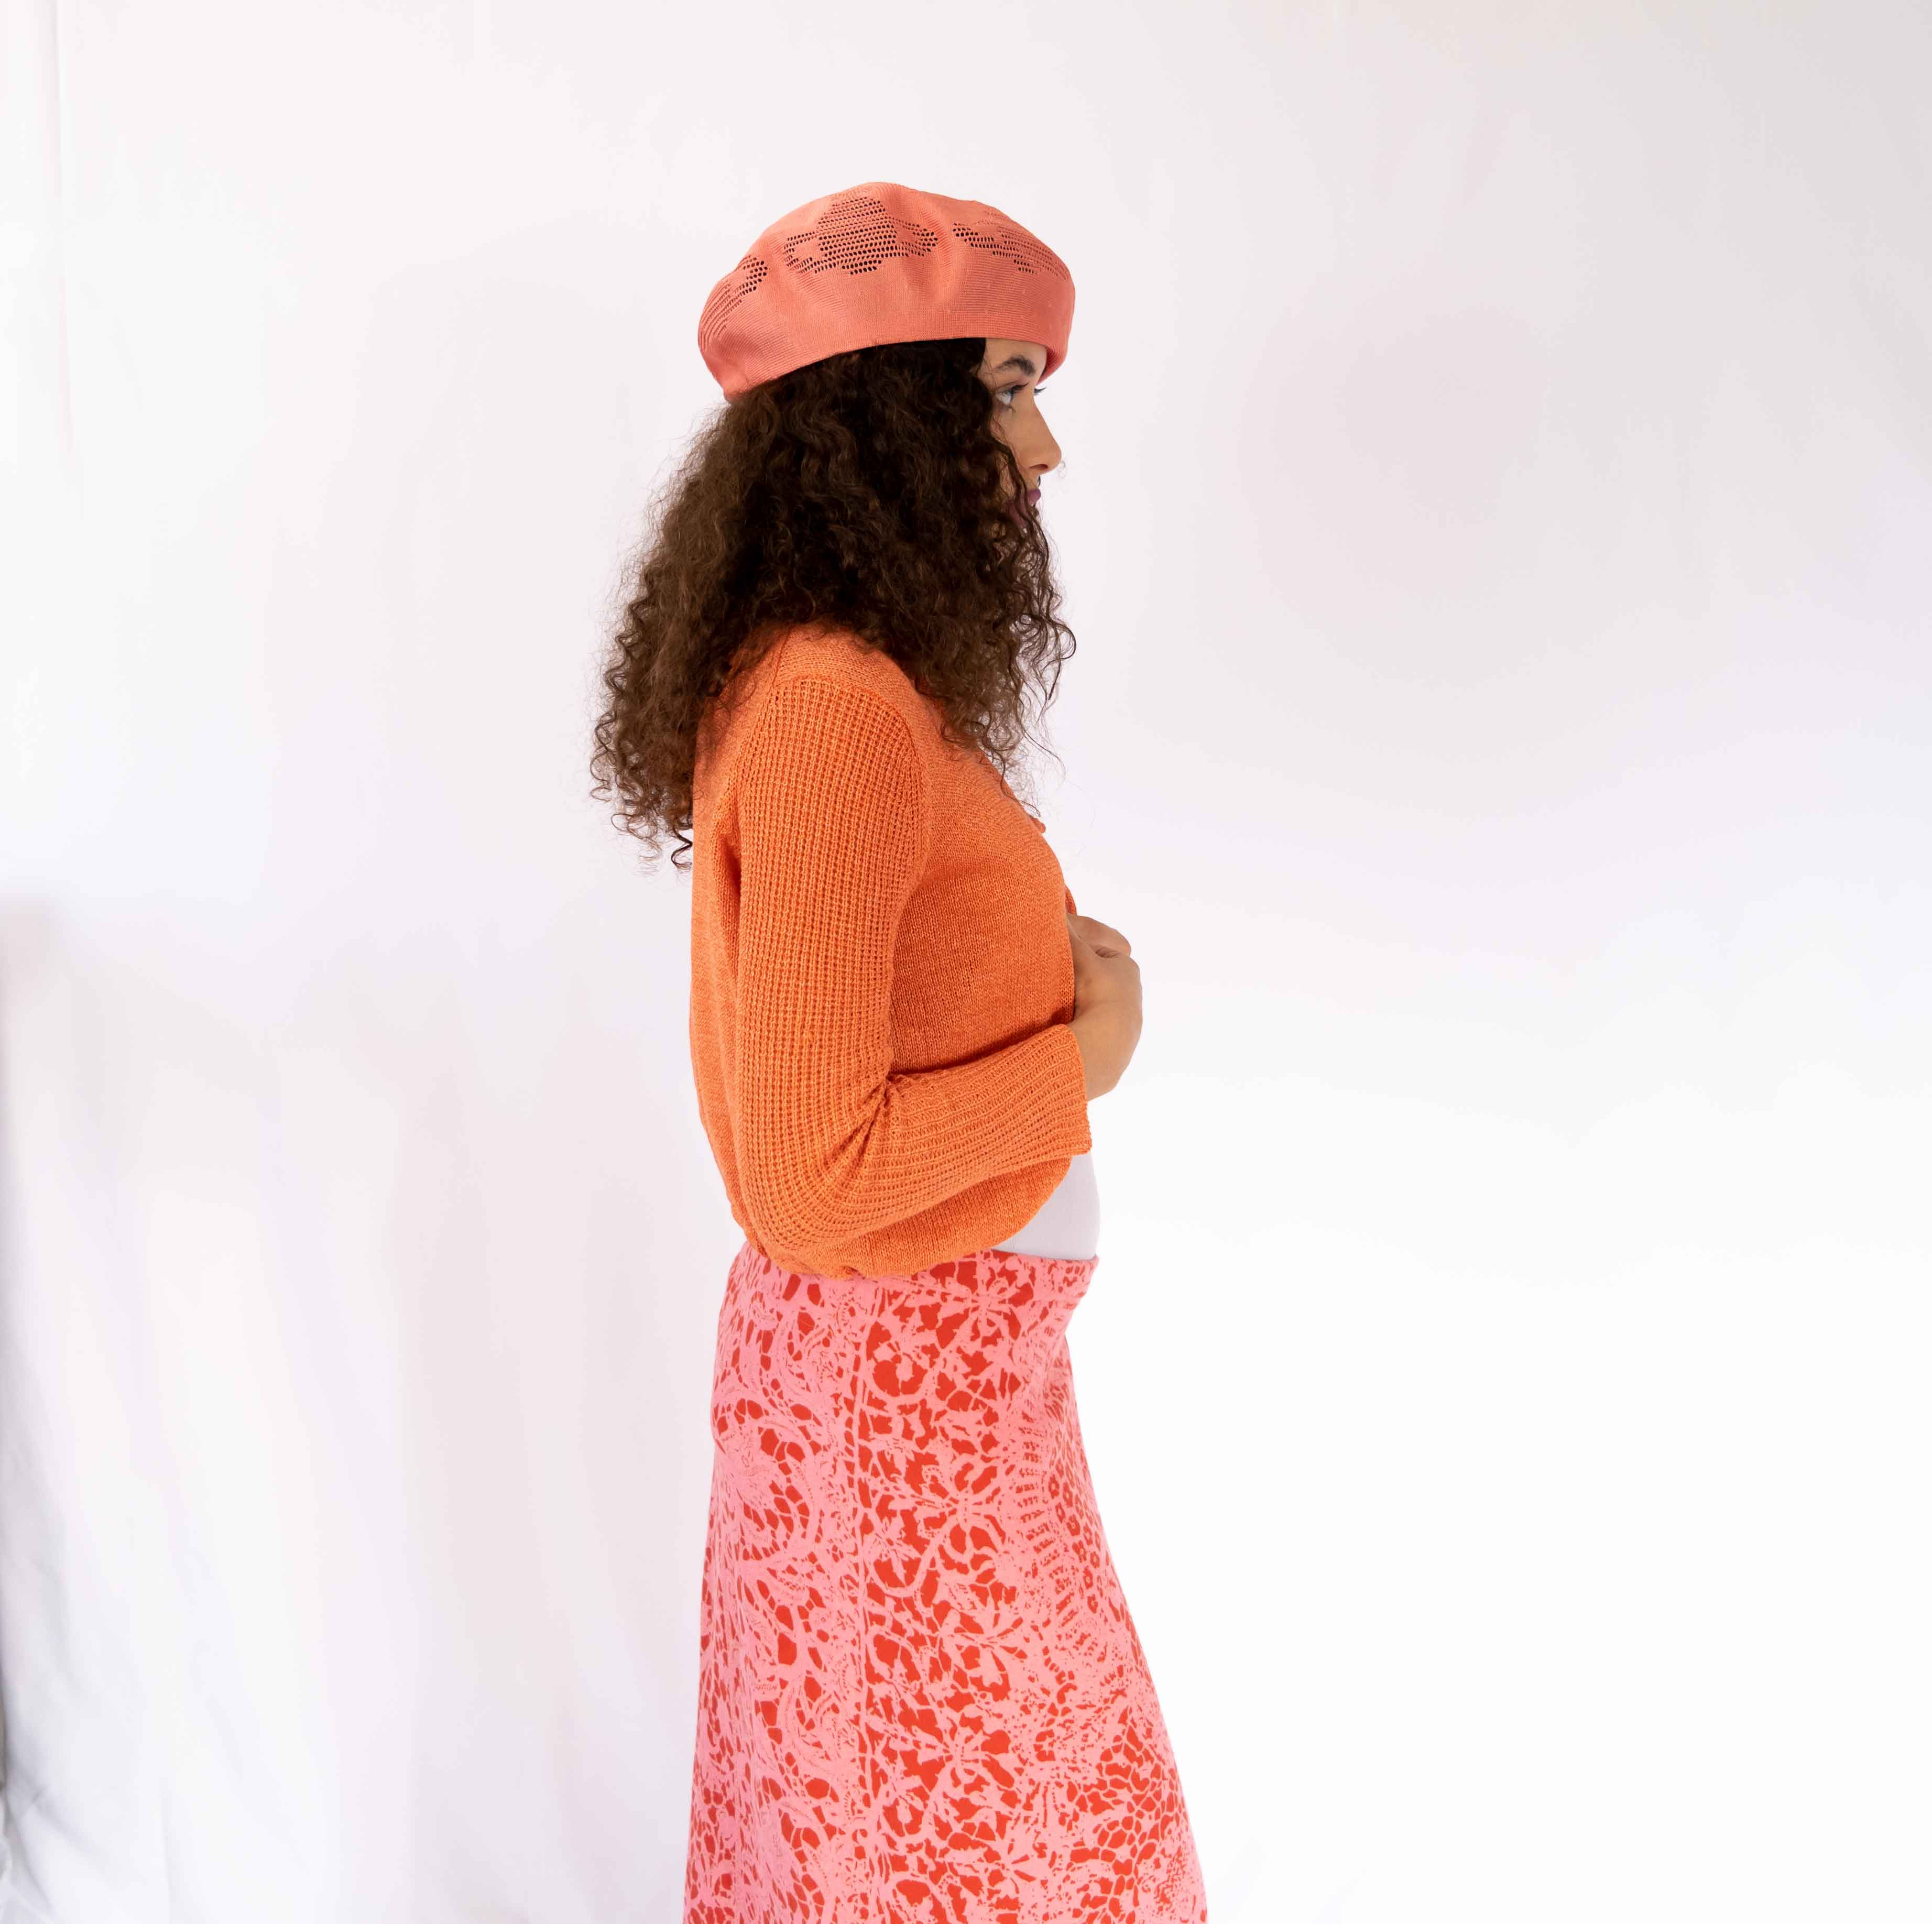 Berets are not only for the French okay. You can wear this beautiful hat for any occasion: To the beach, to a casual date with yourself at a cafe, or to wow your classmates back at school. It's hard to find a beret this special.